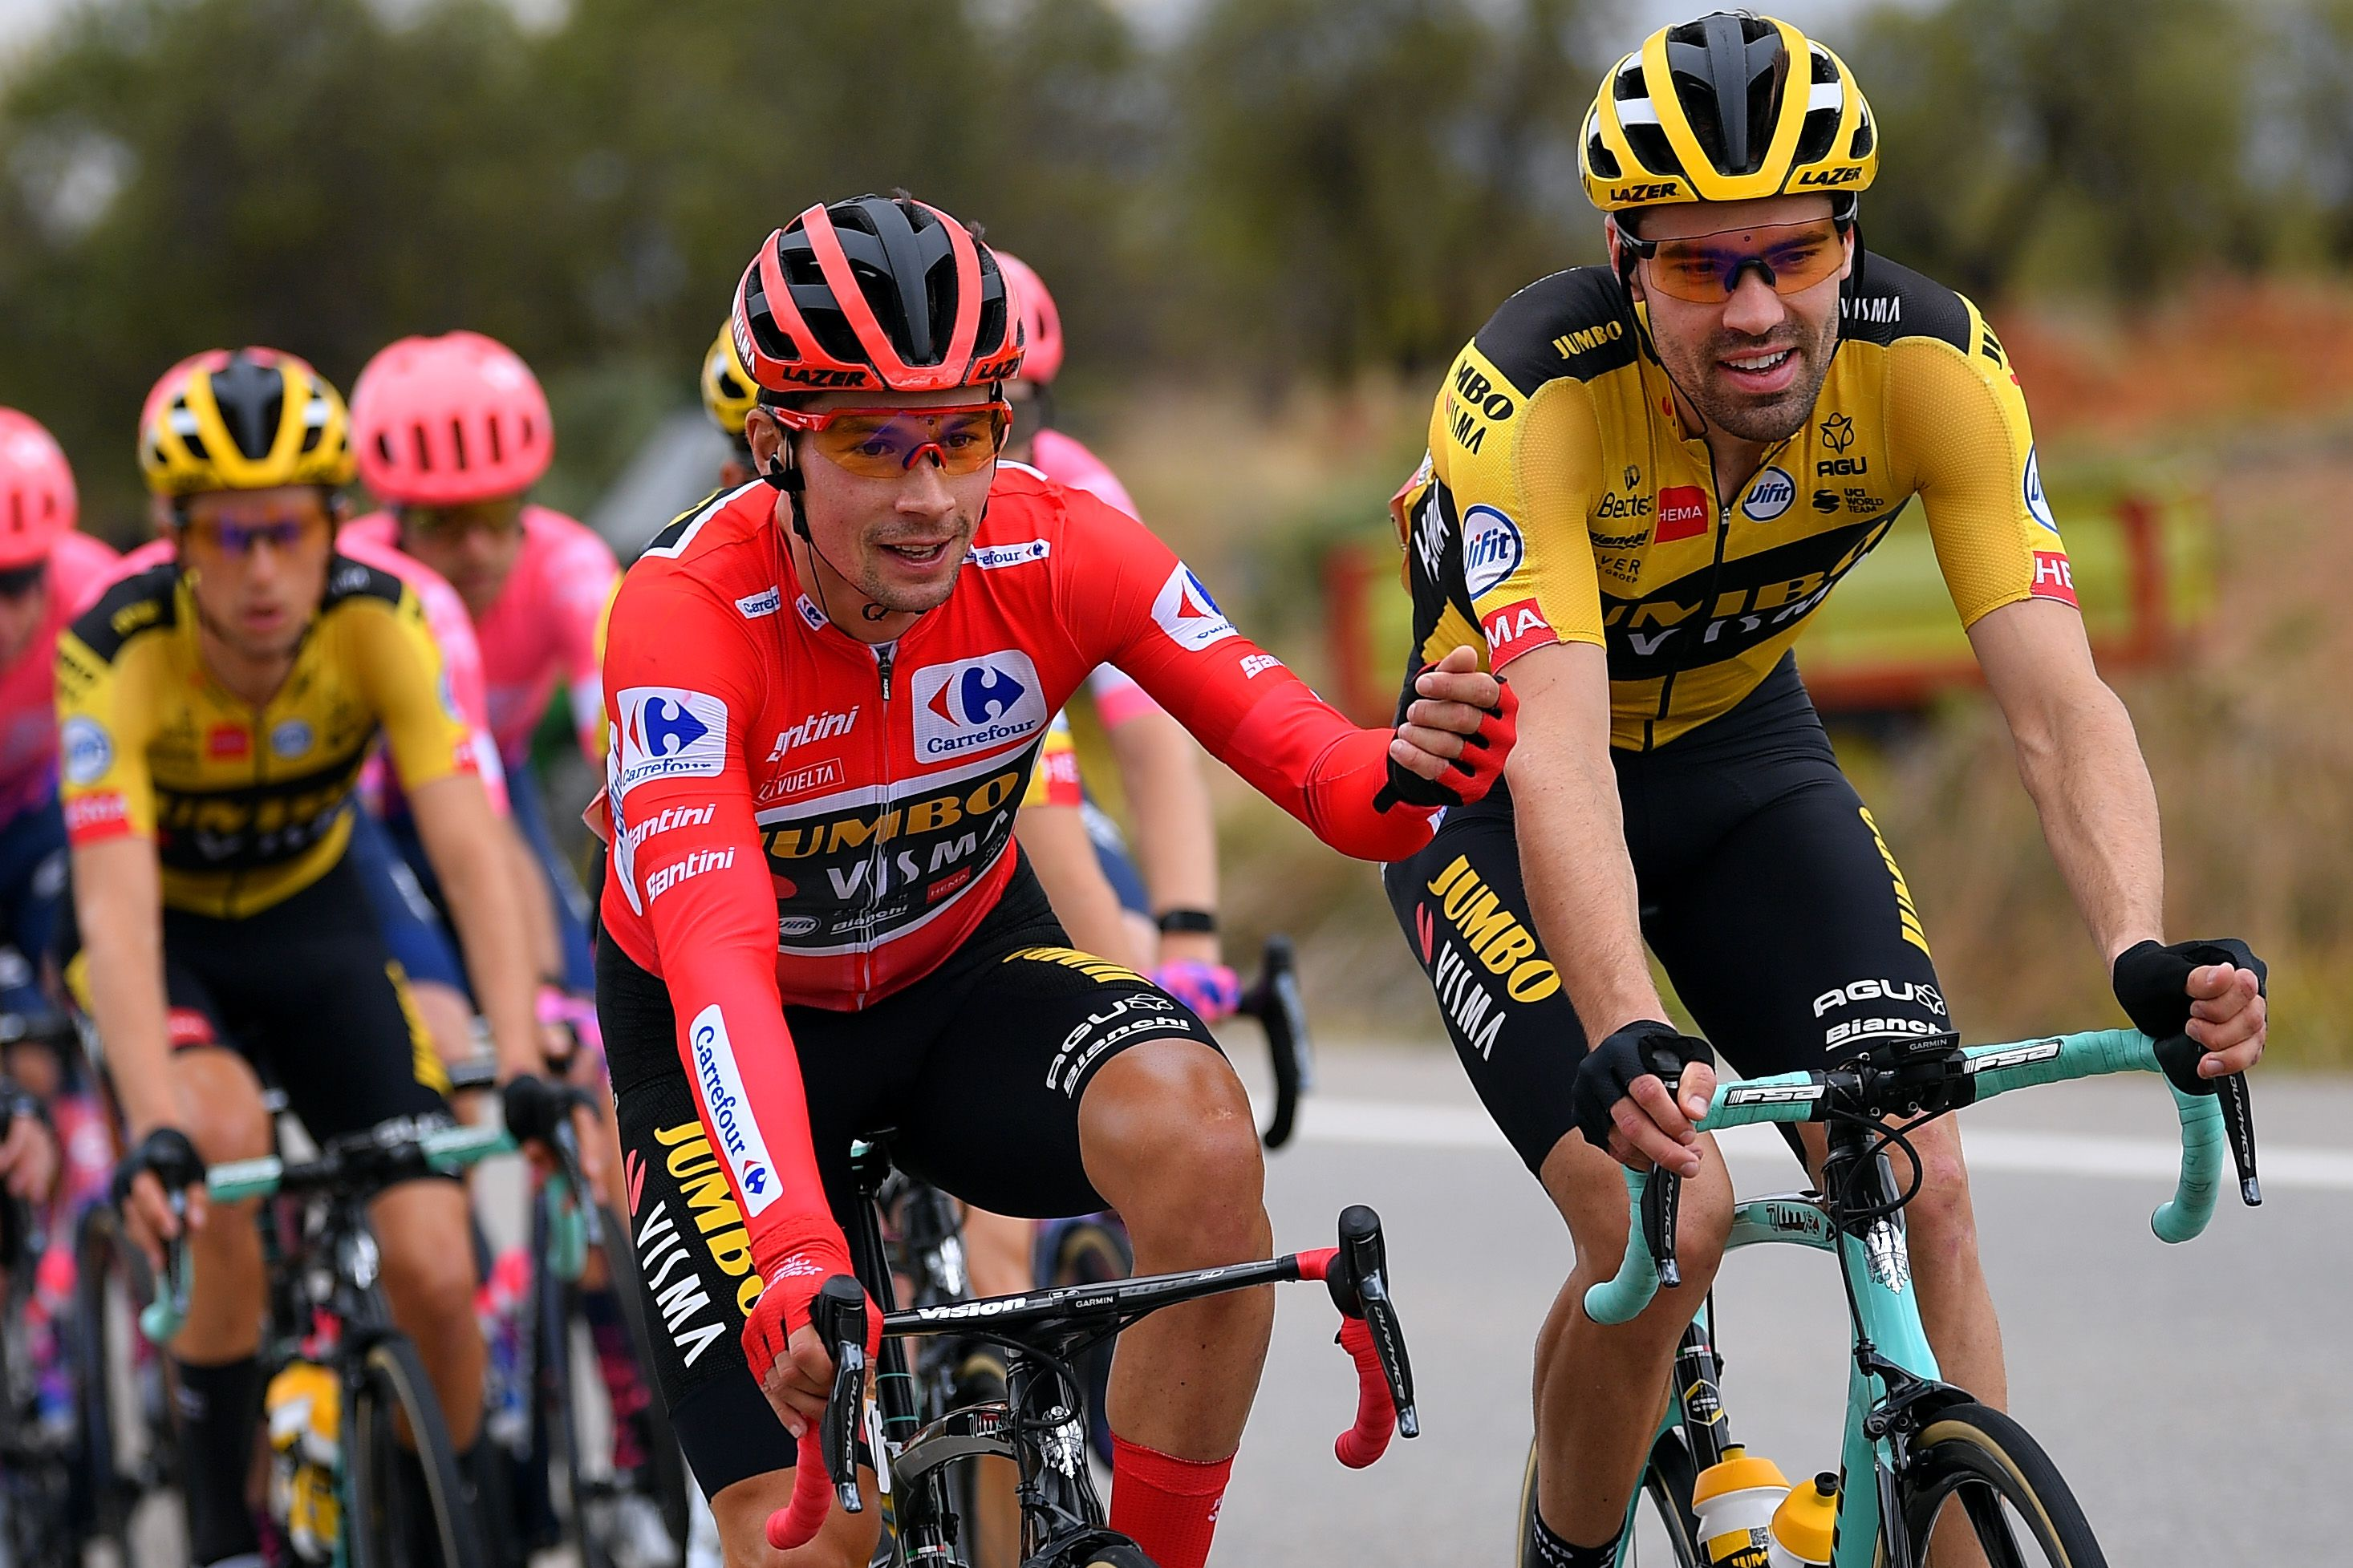 Primož Roglič (left) and Tom Dumoulin during Stage 3 of the 2020 Tour of Spain.